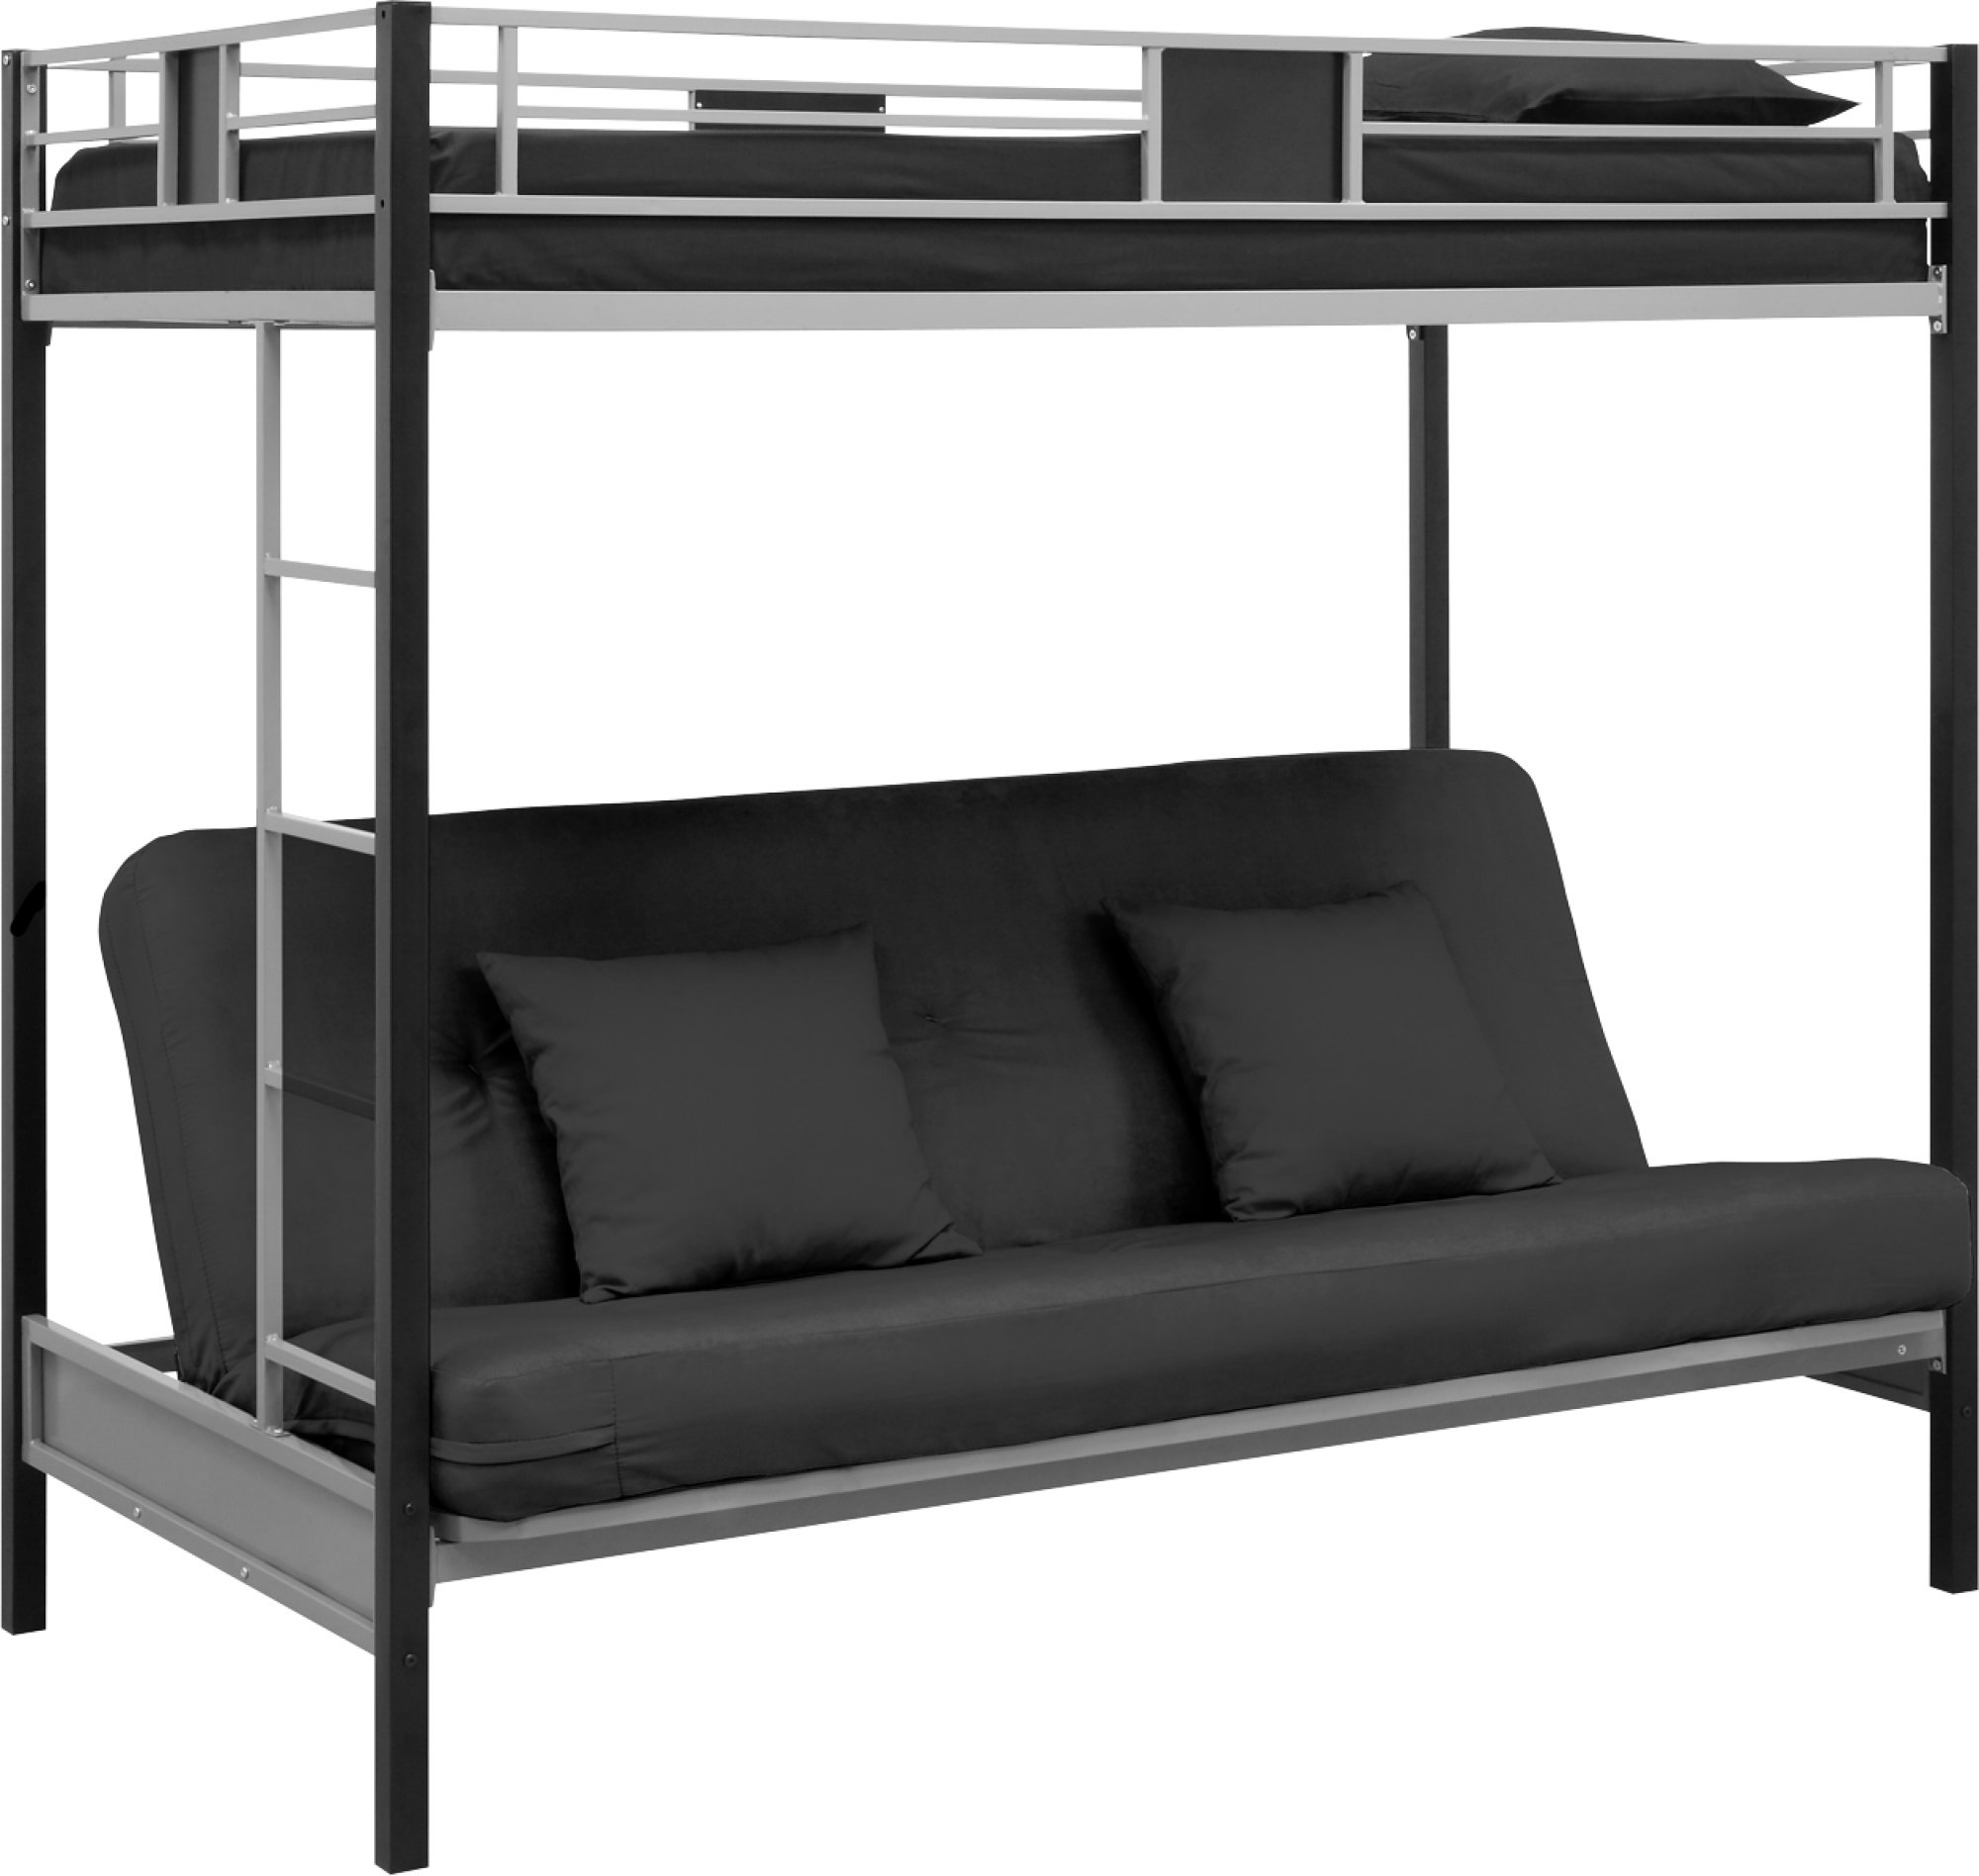 uncategorized futons pic over bed dhp trend and sofa bunk metal twin parts nsyd iron futon fascinating concept for frame